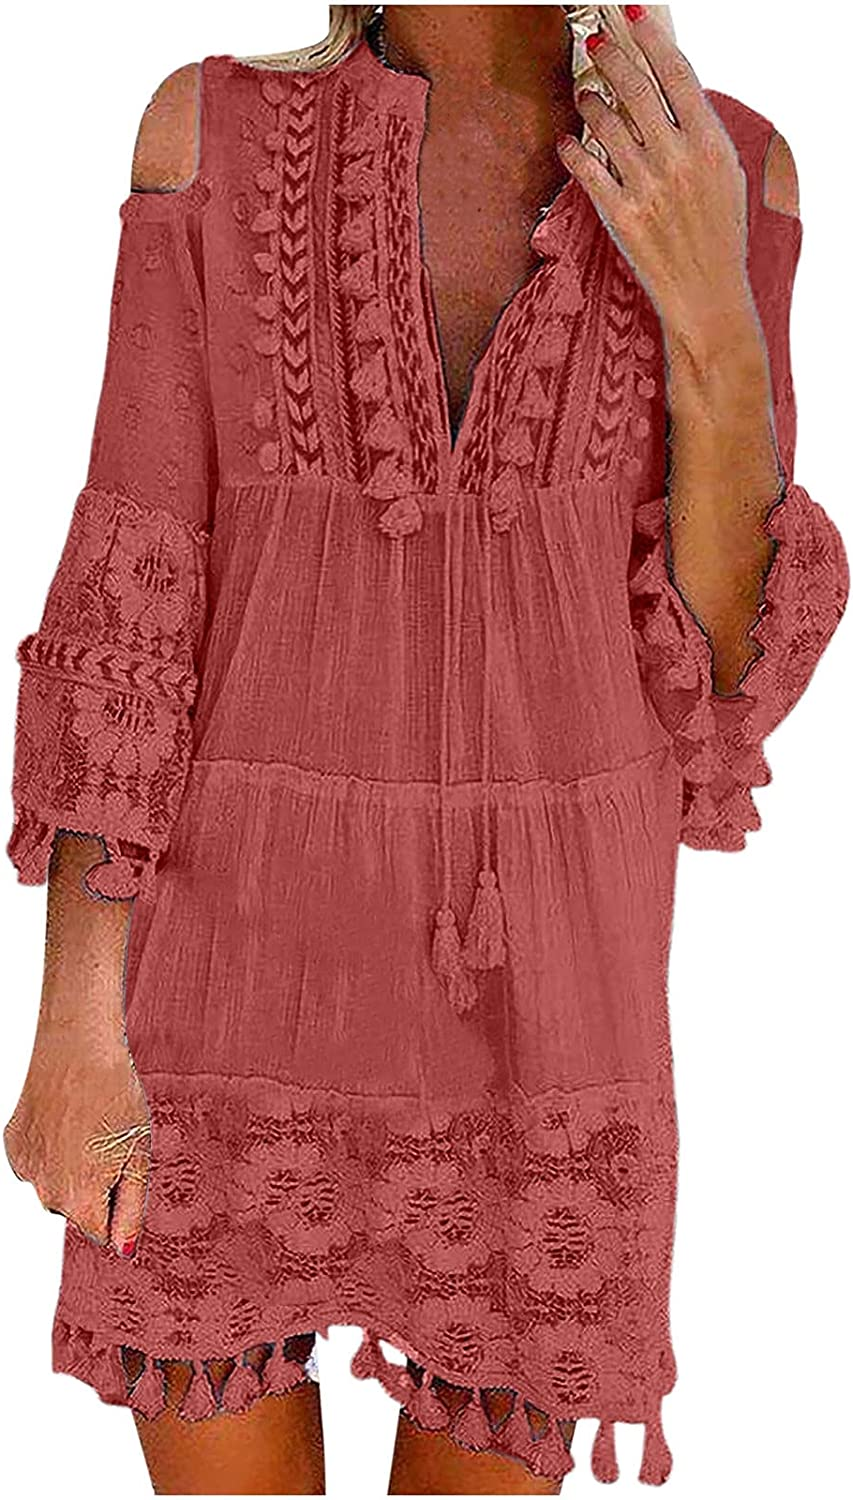 RKSTN Womens Dresses Lace Embroidery Patchword Dress Loose Casua